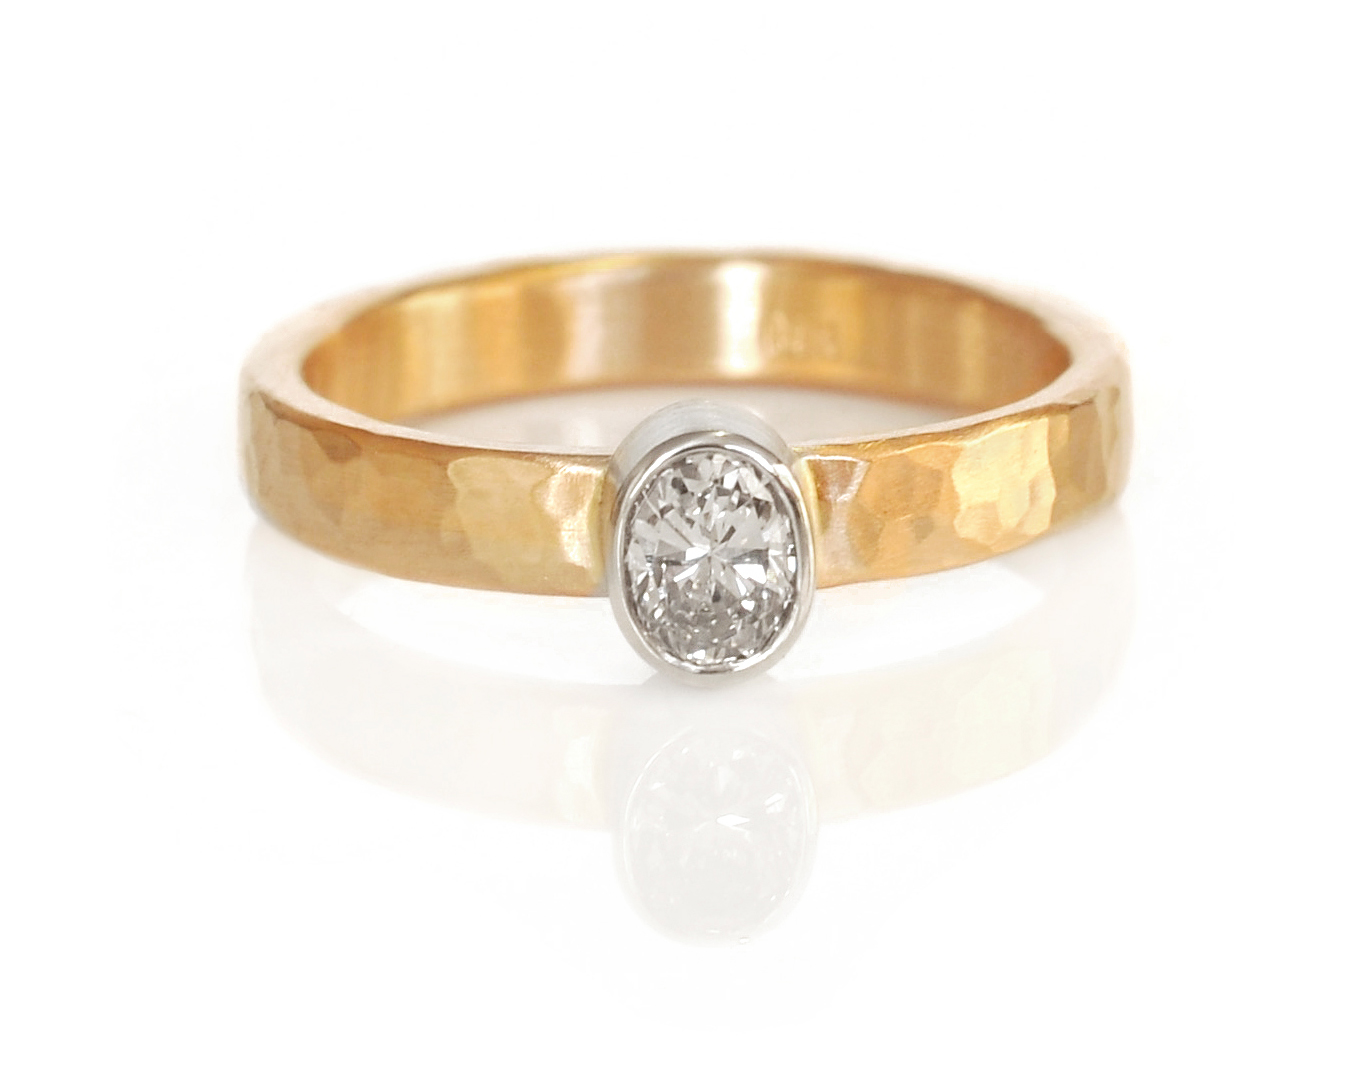 A family diamond re-mounted into a modern setting of 14k white and yellow golds with a hammered texture.